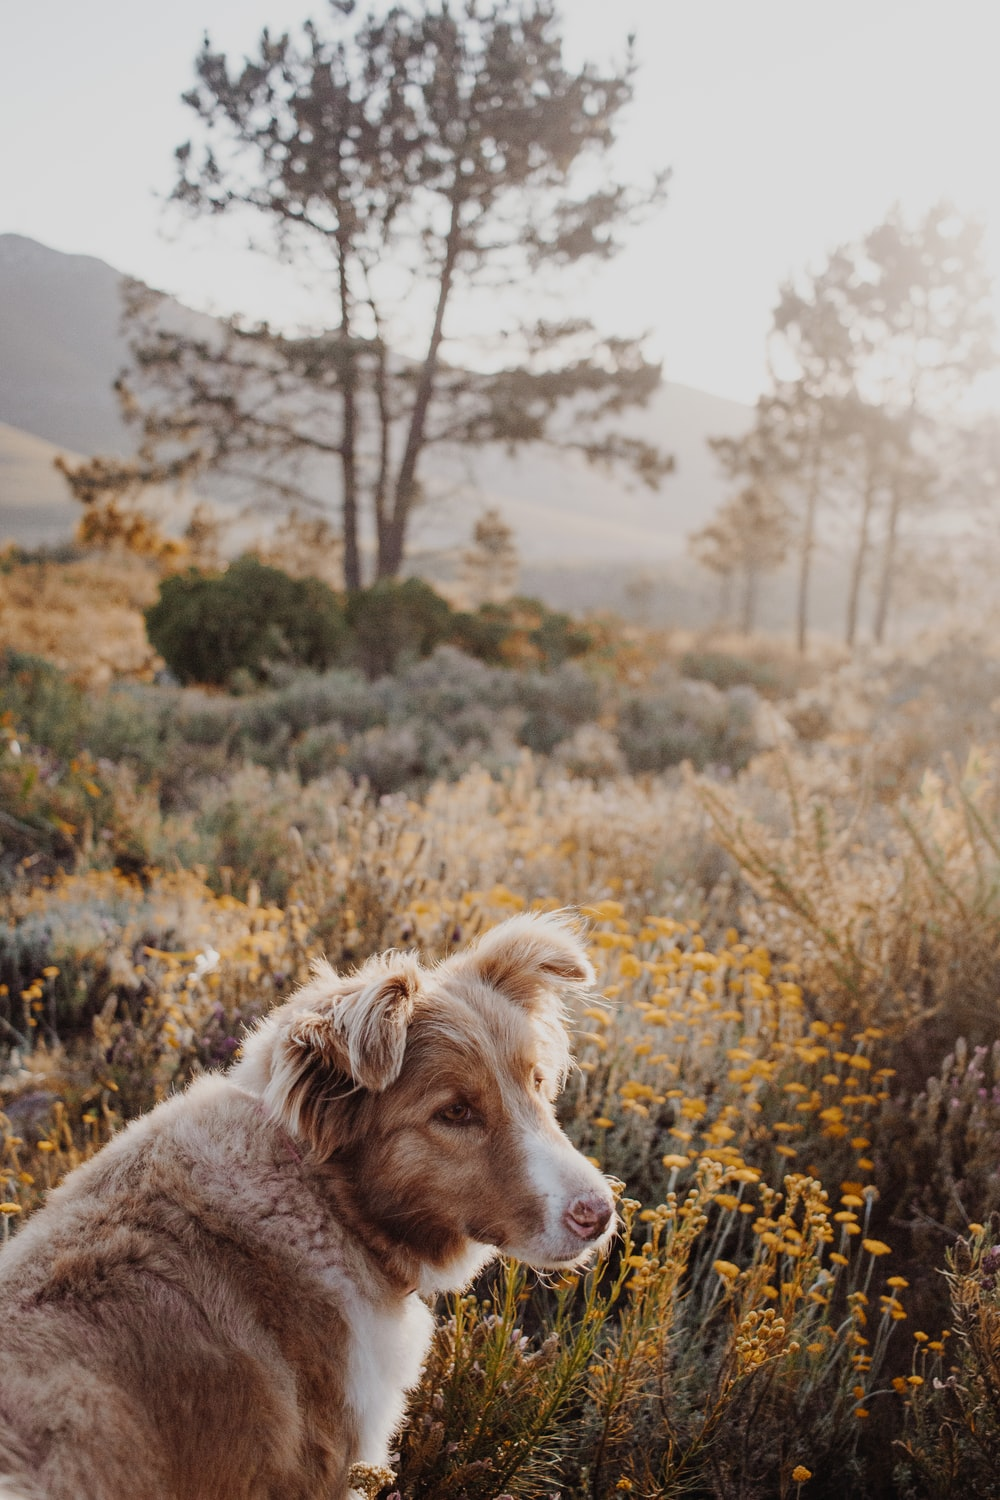 white and brown short coated dog on yellow flower field during daytime